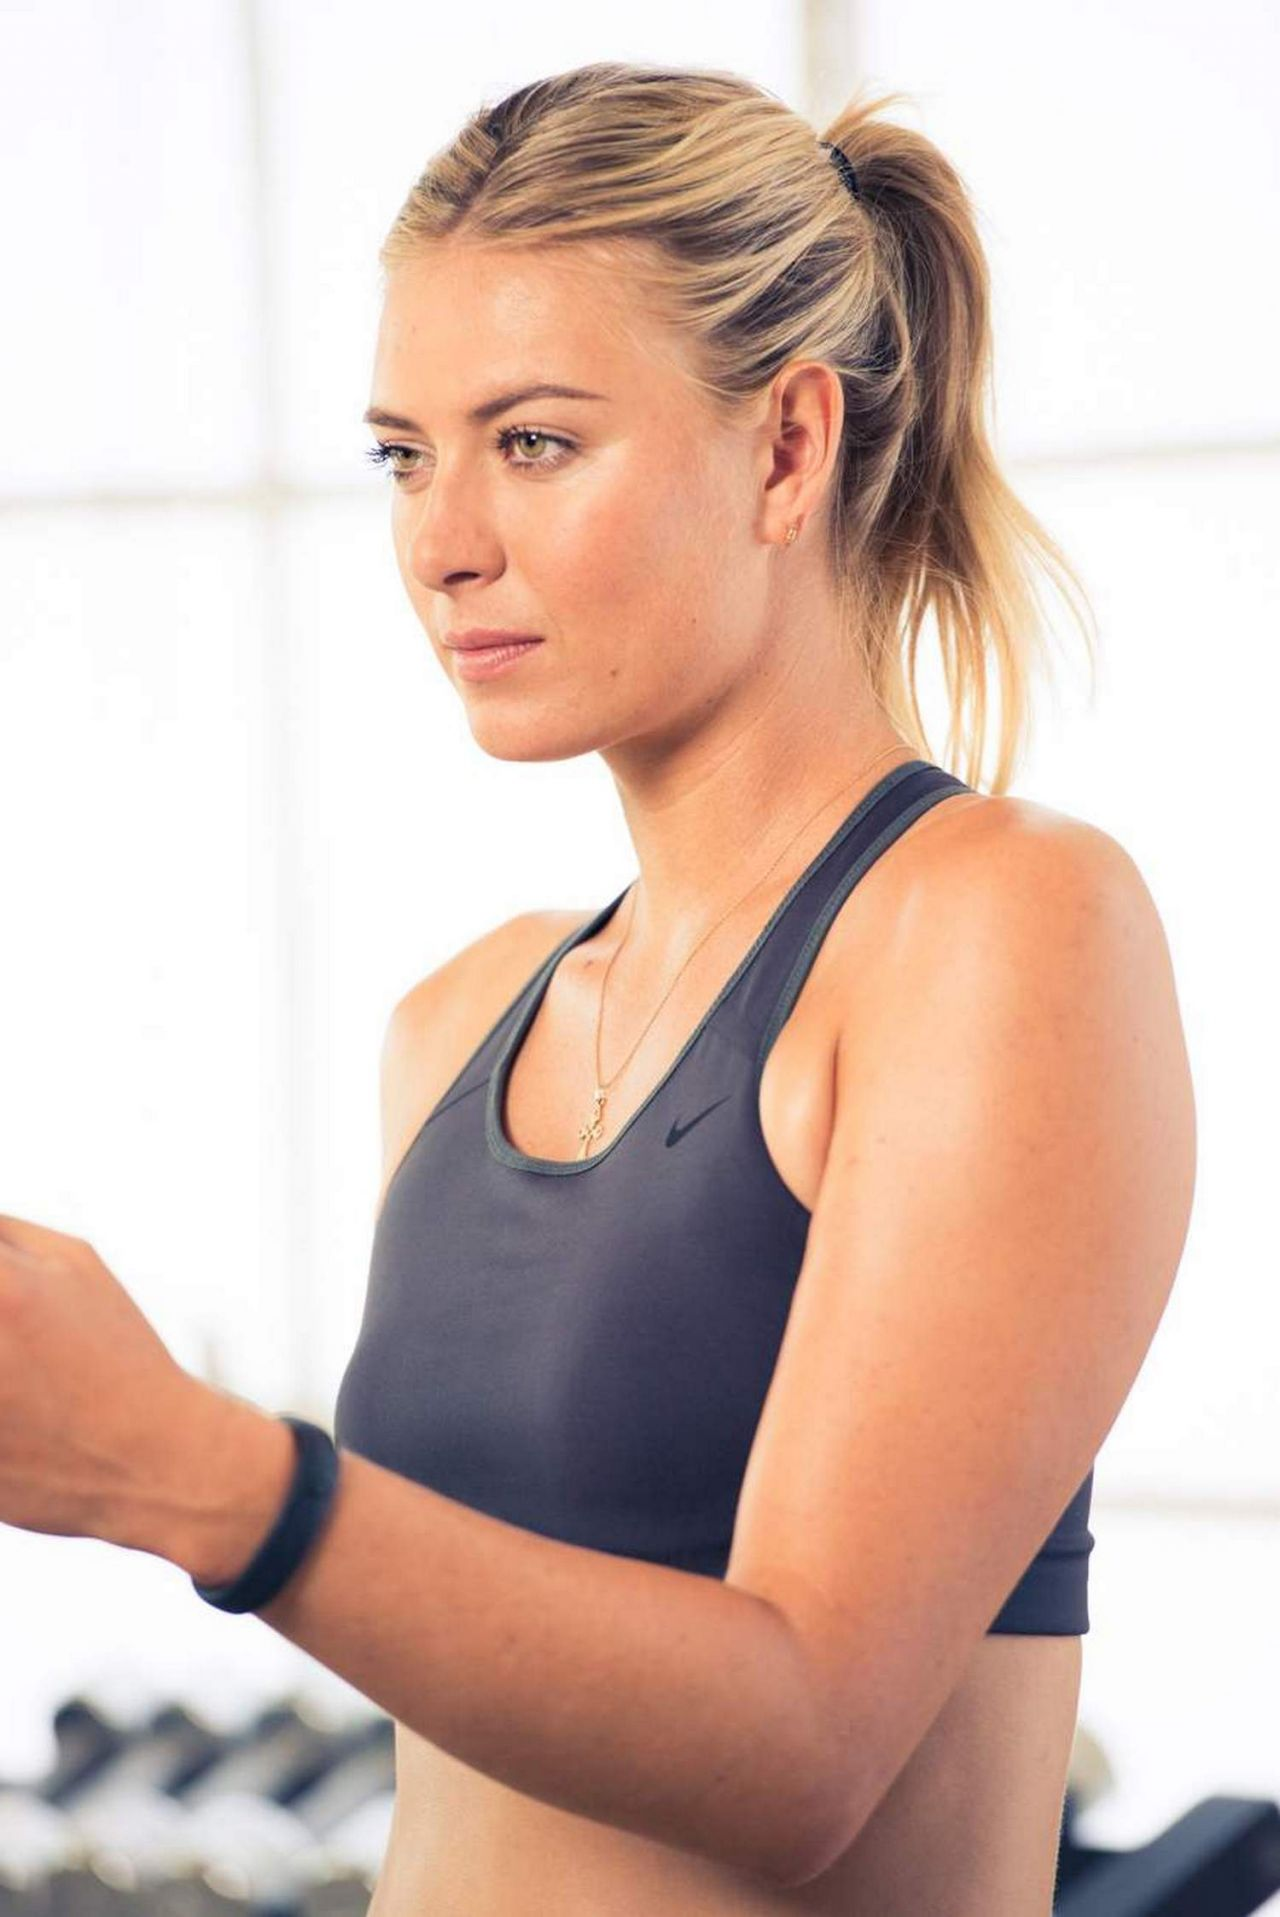 Maria Sharapova Working Out For A Nike Photoshoot July